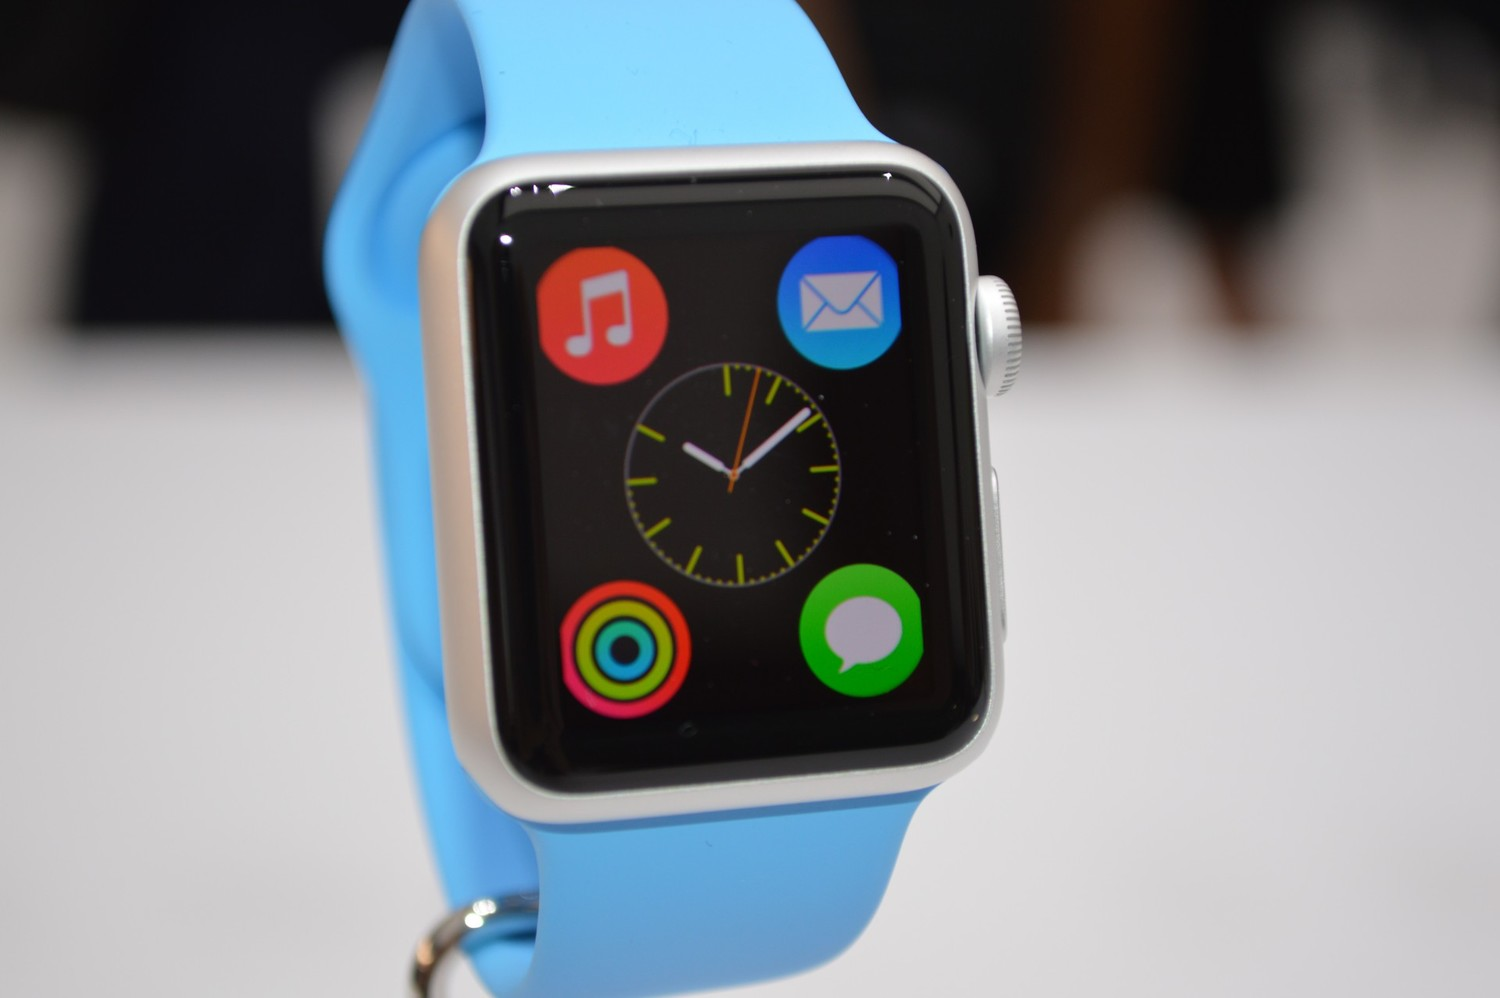 Initial Apple Watch reviews predict success and point to the future